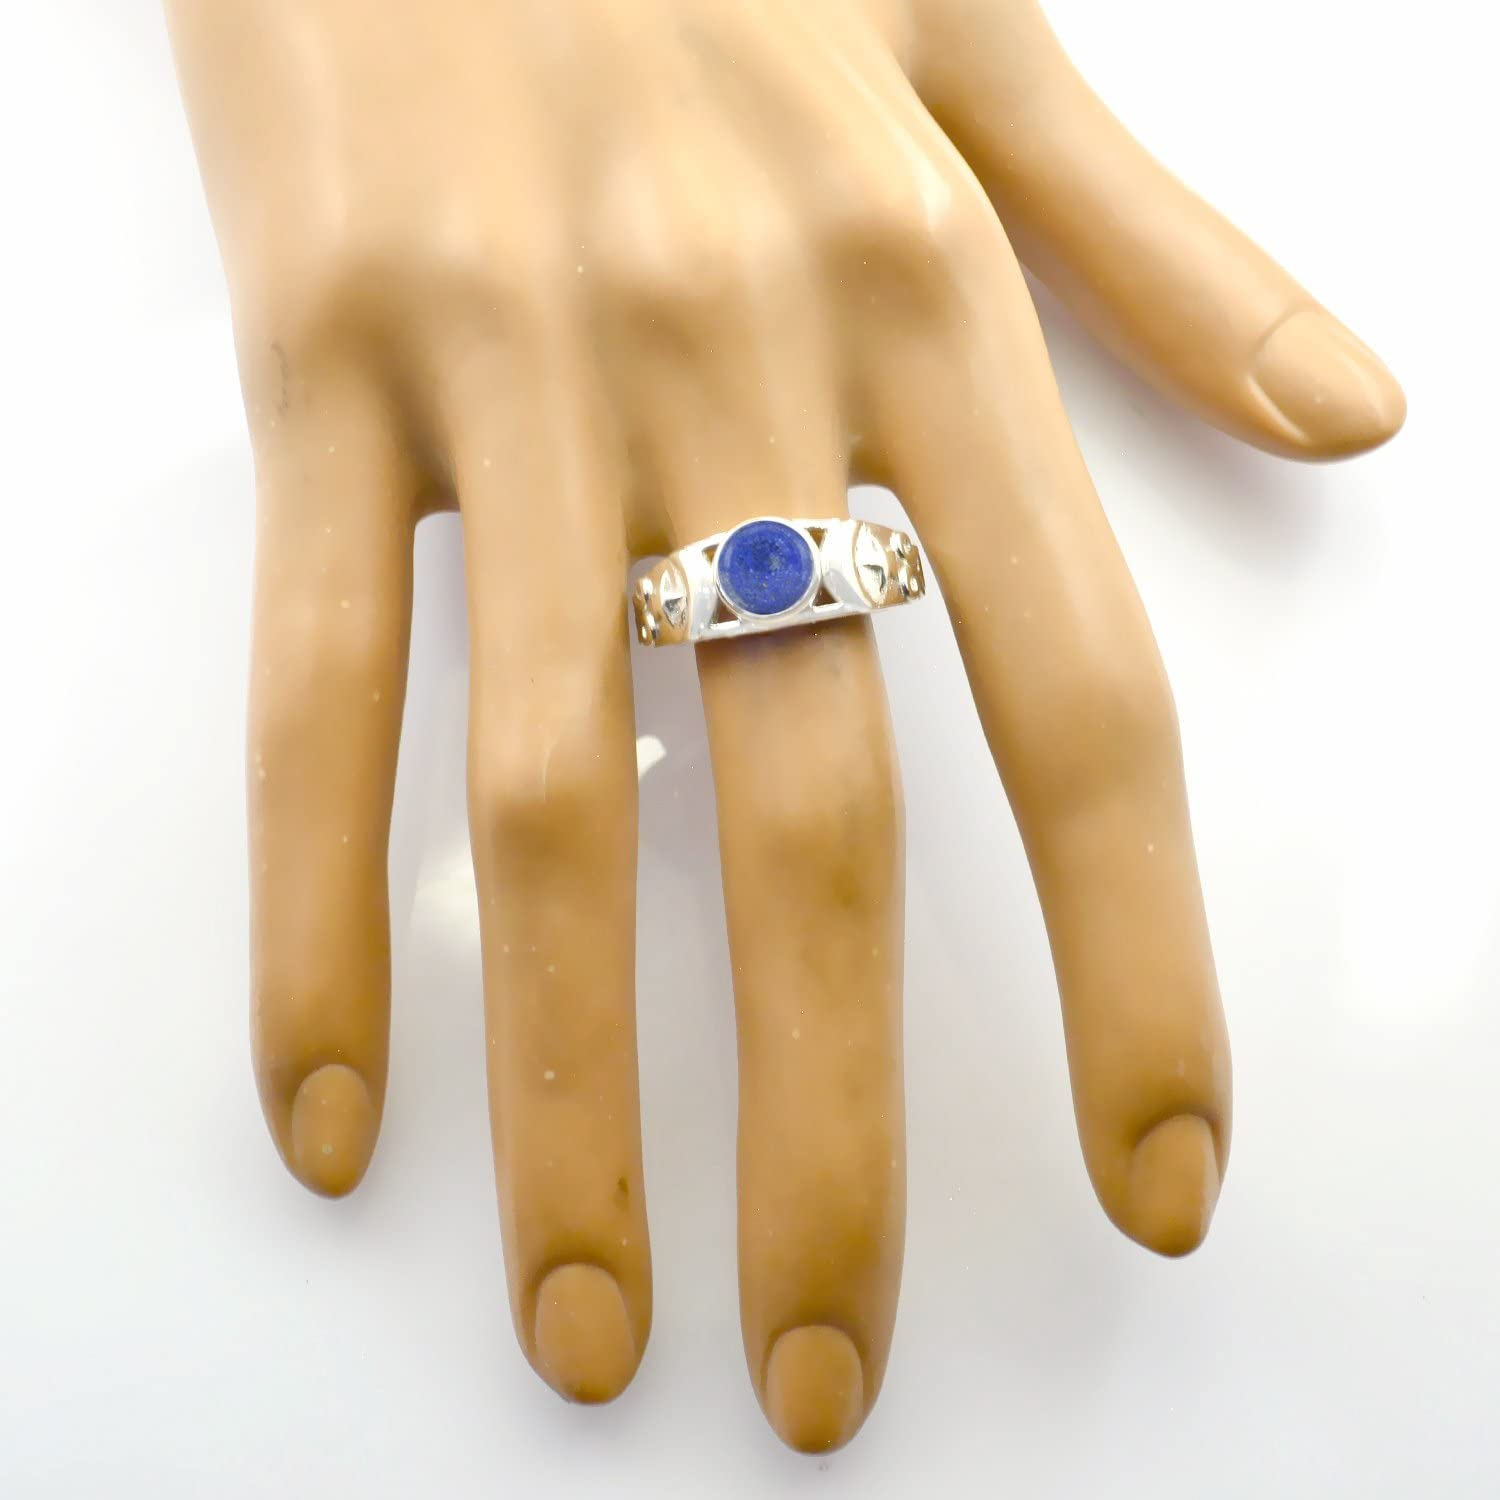 Faishon Jewelry Nice Item Gift for Friendship Day Great Ring Good Gemstones Round cabochon Lapis Lazuli Rings 925 Sterling Silver Blue Lapis Lazuli Good Gemstones Ring